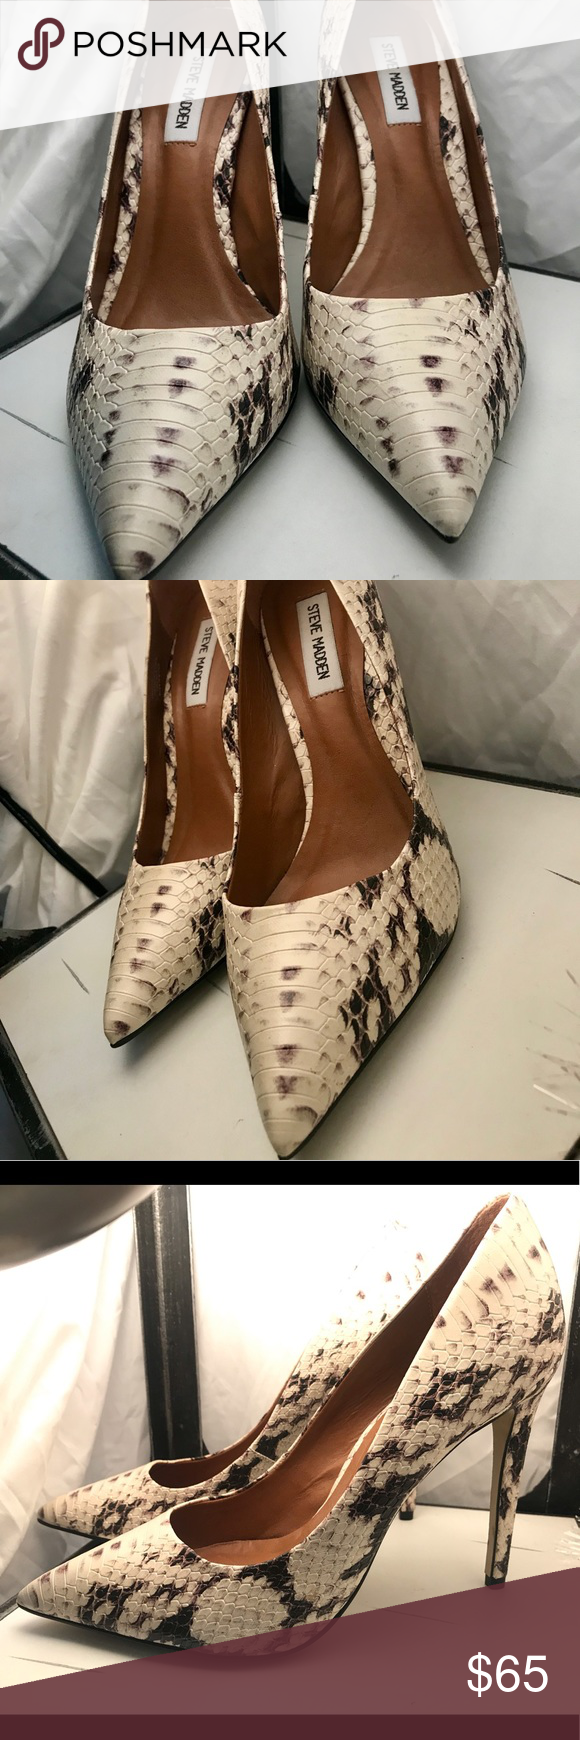 21b68d9fda6 Steve Madden Snake Patterned Pumps Sexy!!!! These are the Steve Madden  Daisie-P in natural snake size 9m They are absolutely gorgeous!